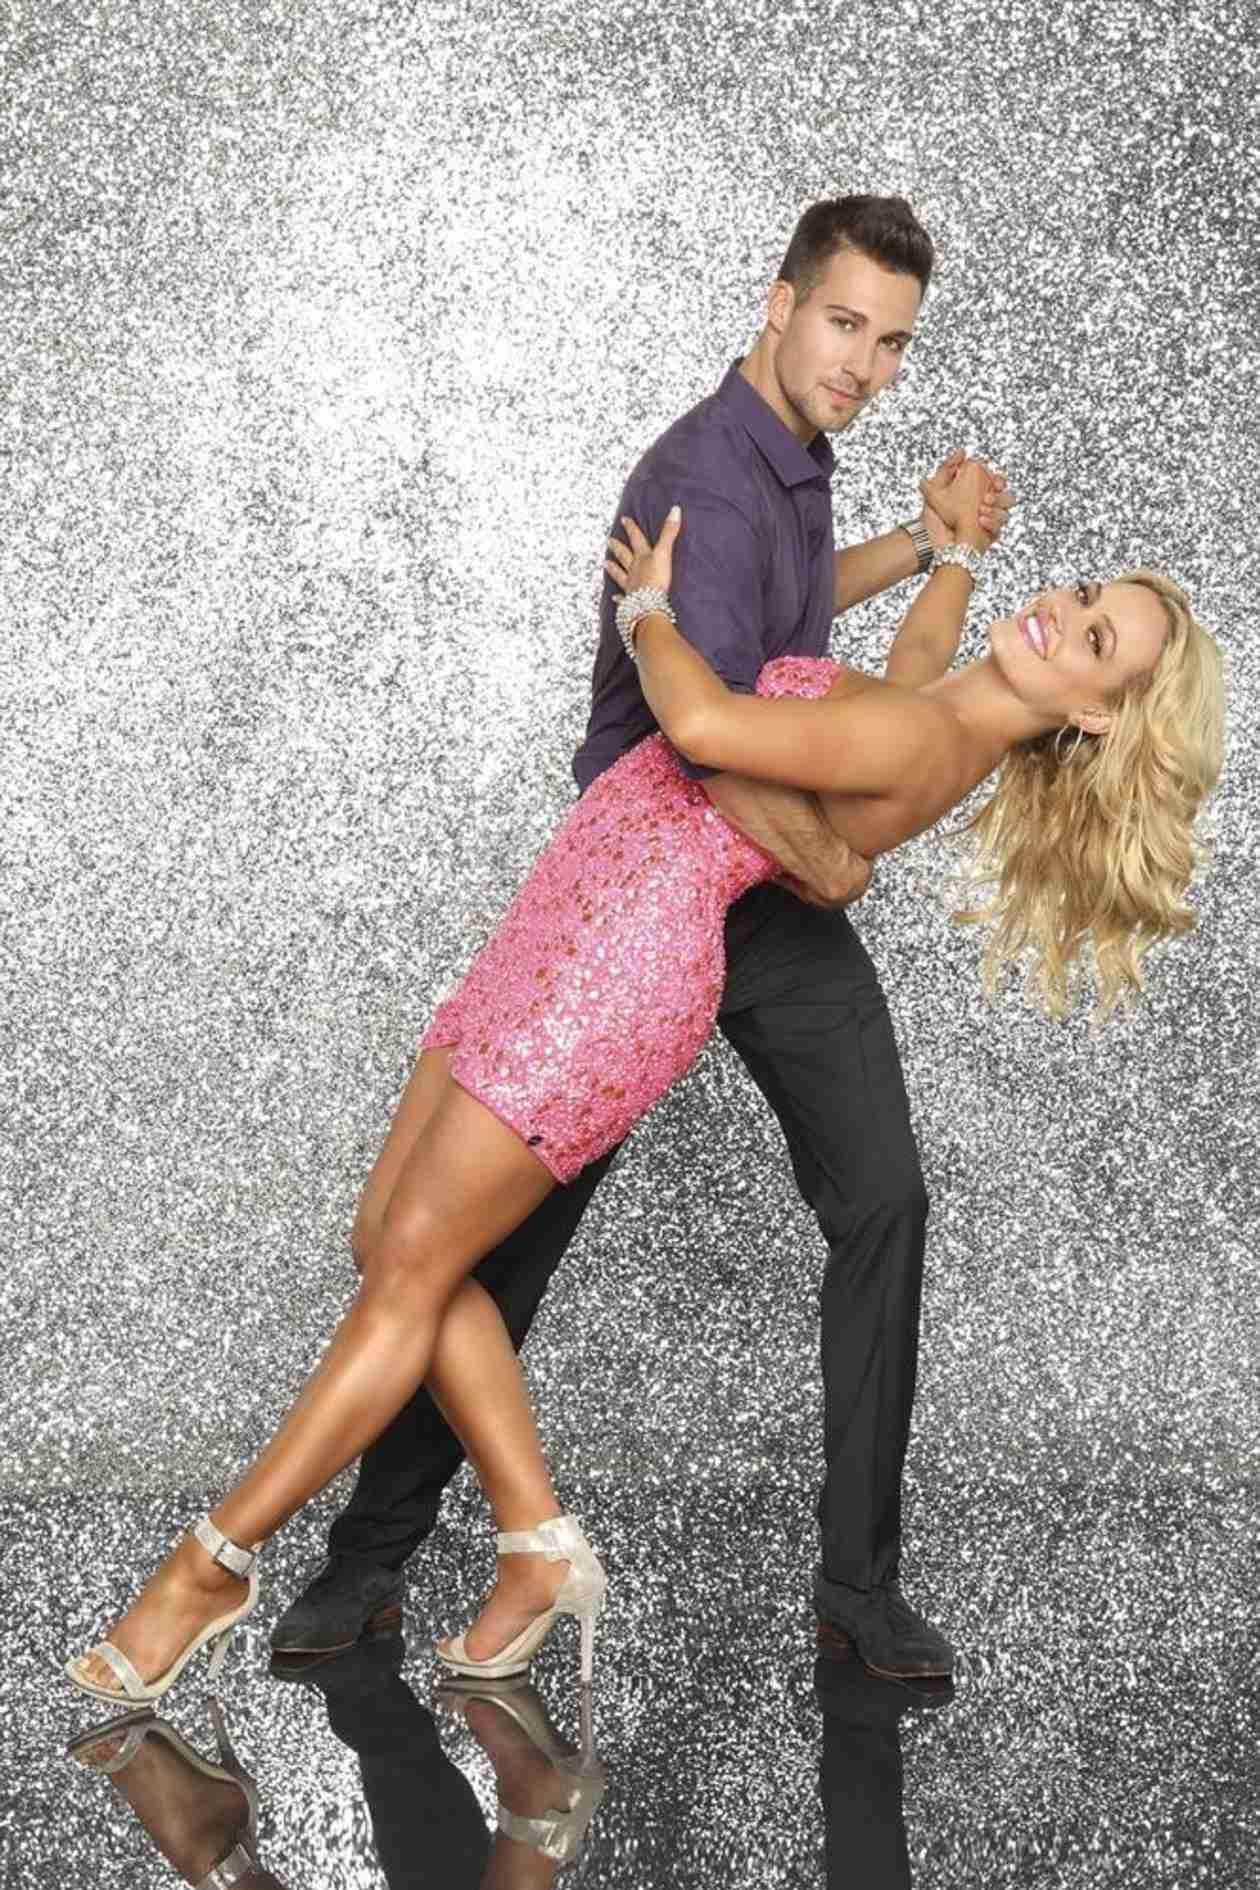 Dancing With the Stars 2014: James Maslow and Peta Murgatroyd's Week 5 Perfect Scoring Contemporary (VIDEO)